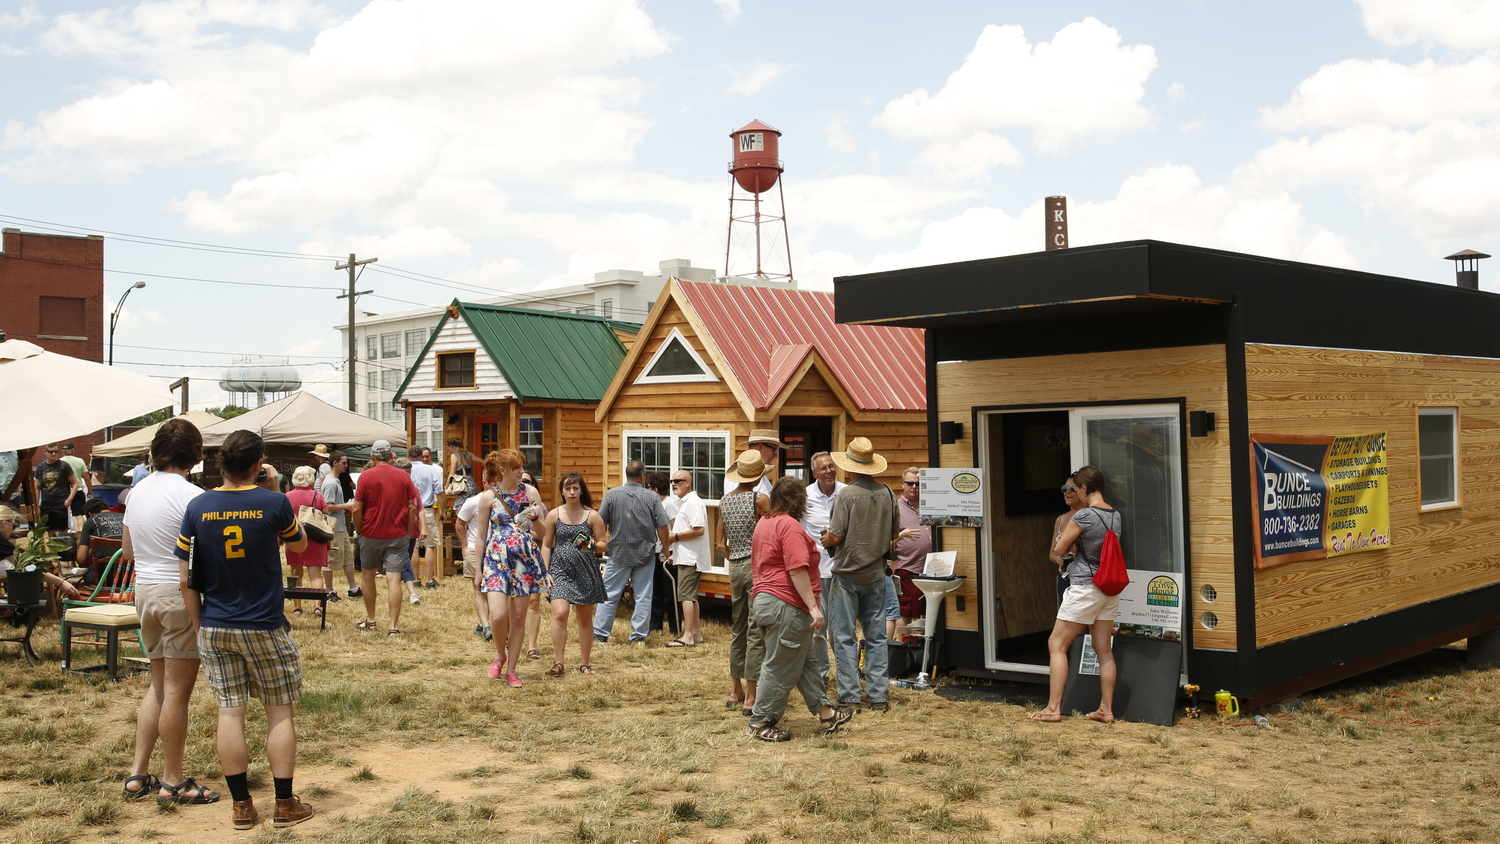 tiny house community. _K3_4523.JPG. Tiny House Expedition Community